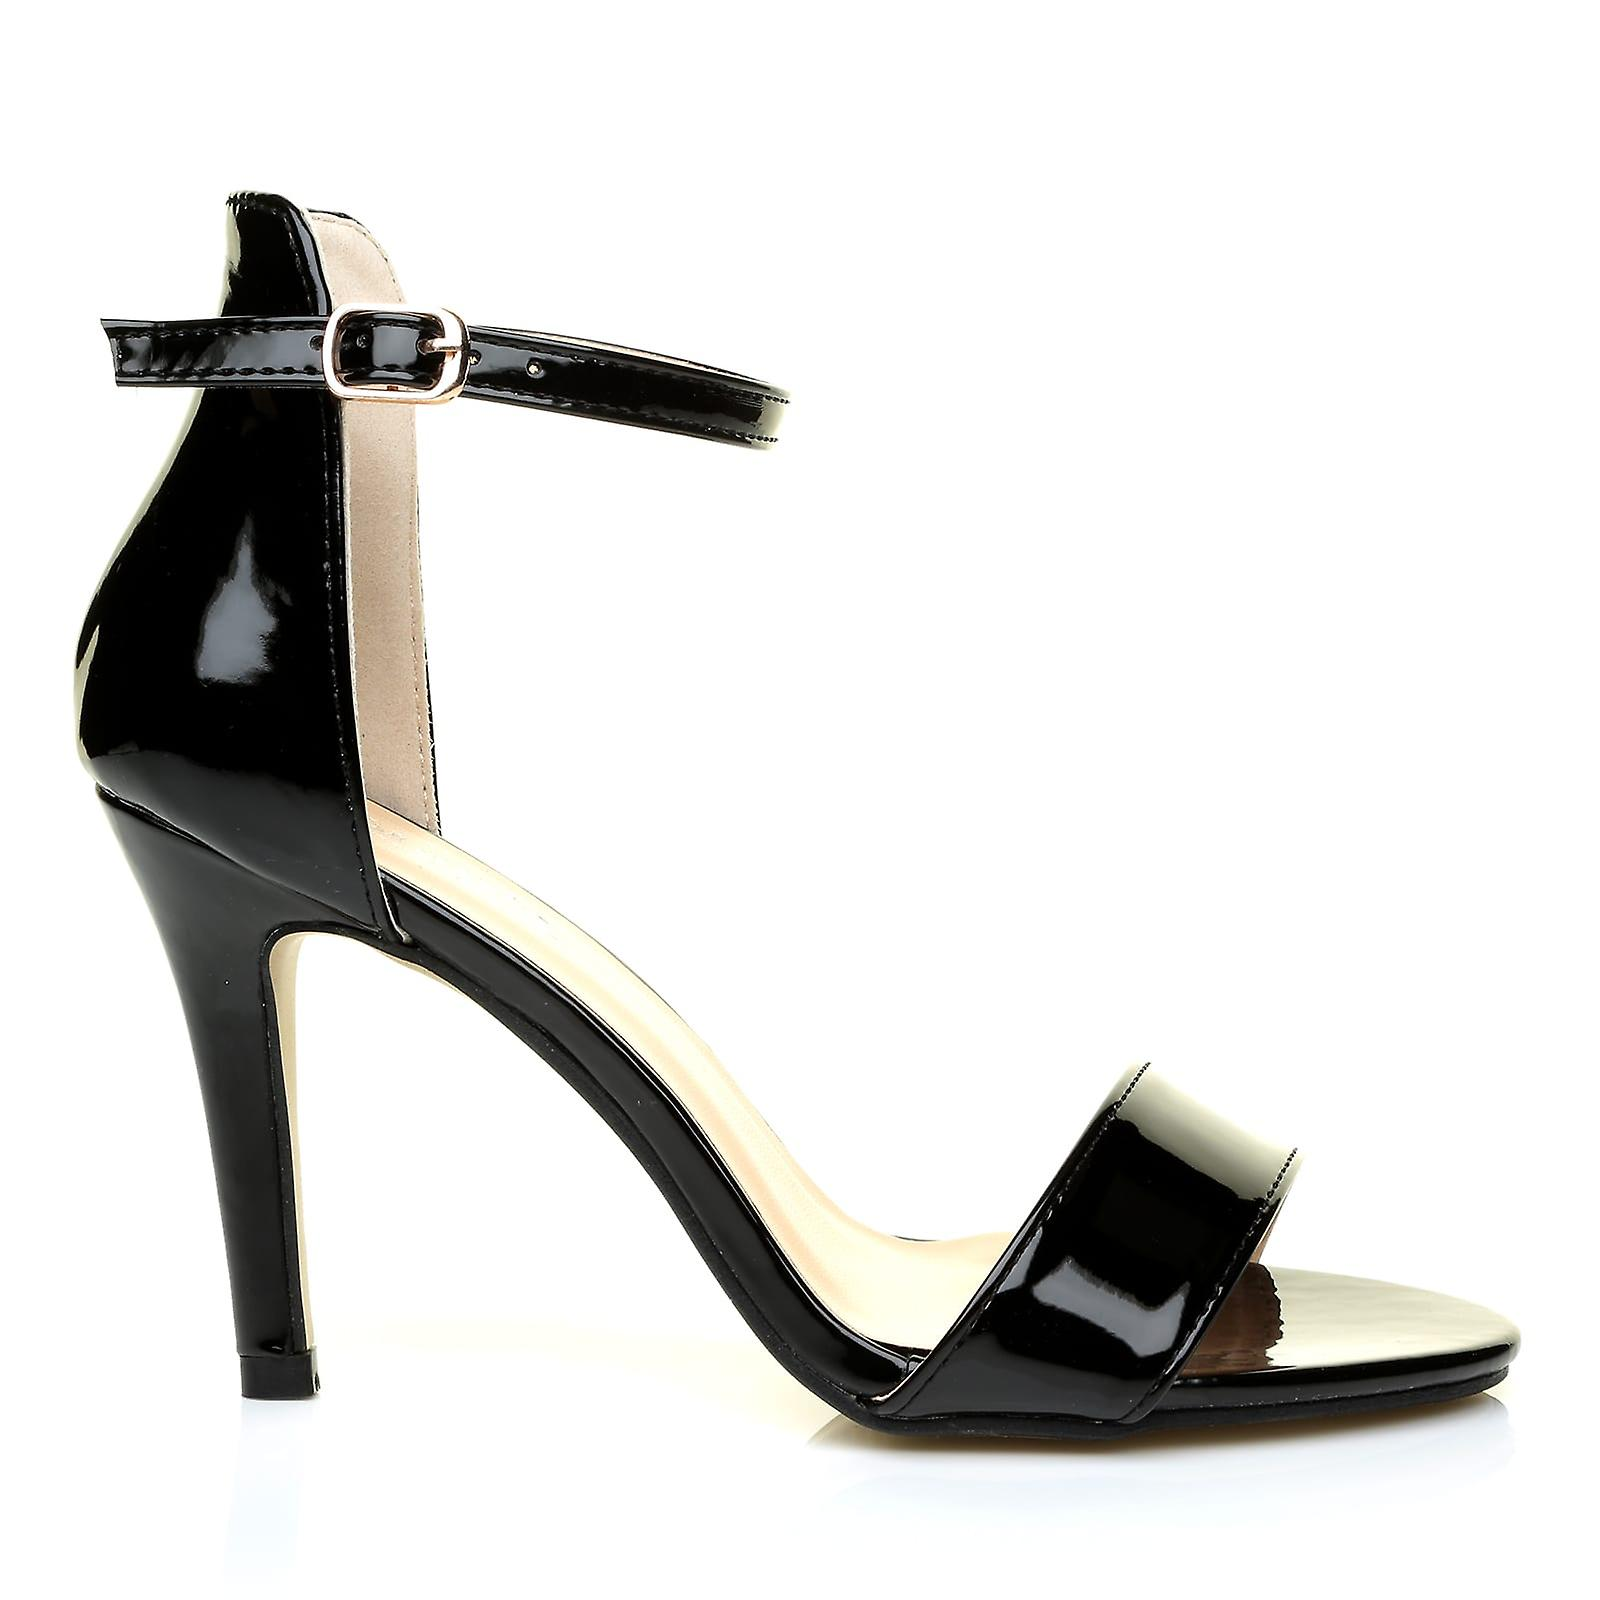 Patent Sandals Heel Strap There Ankle Barely High Black PAM gwZqPx5Oa